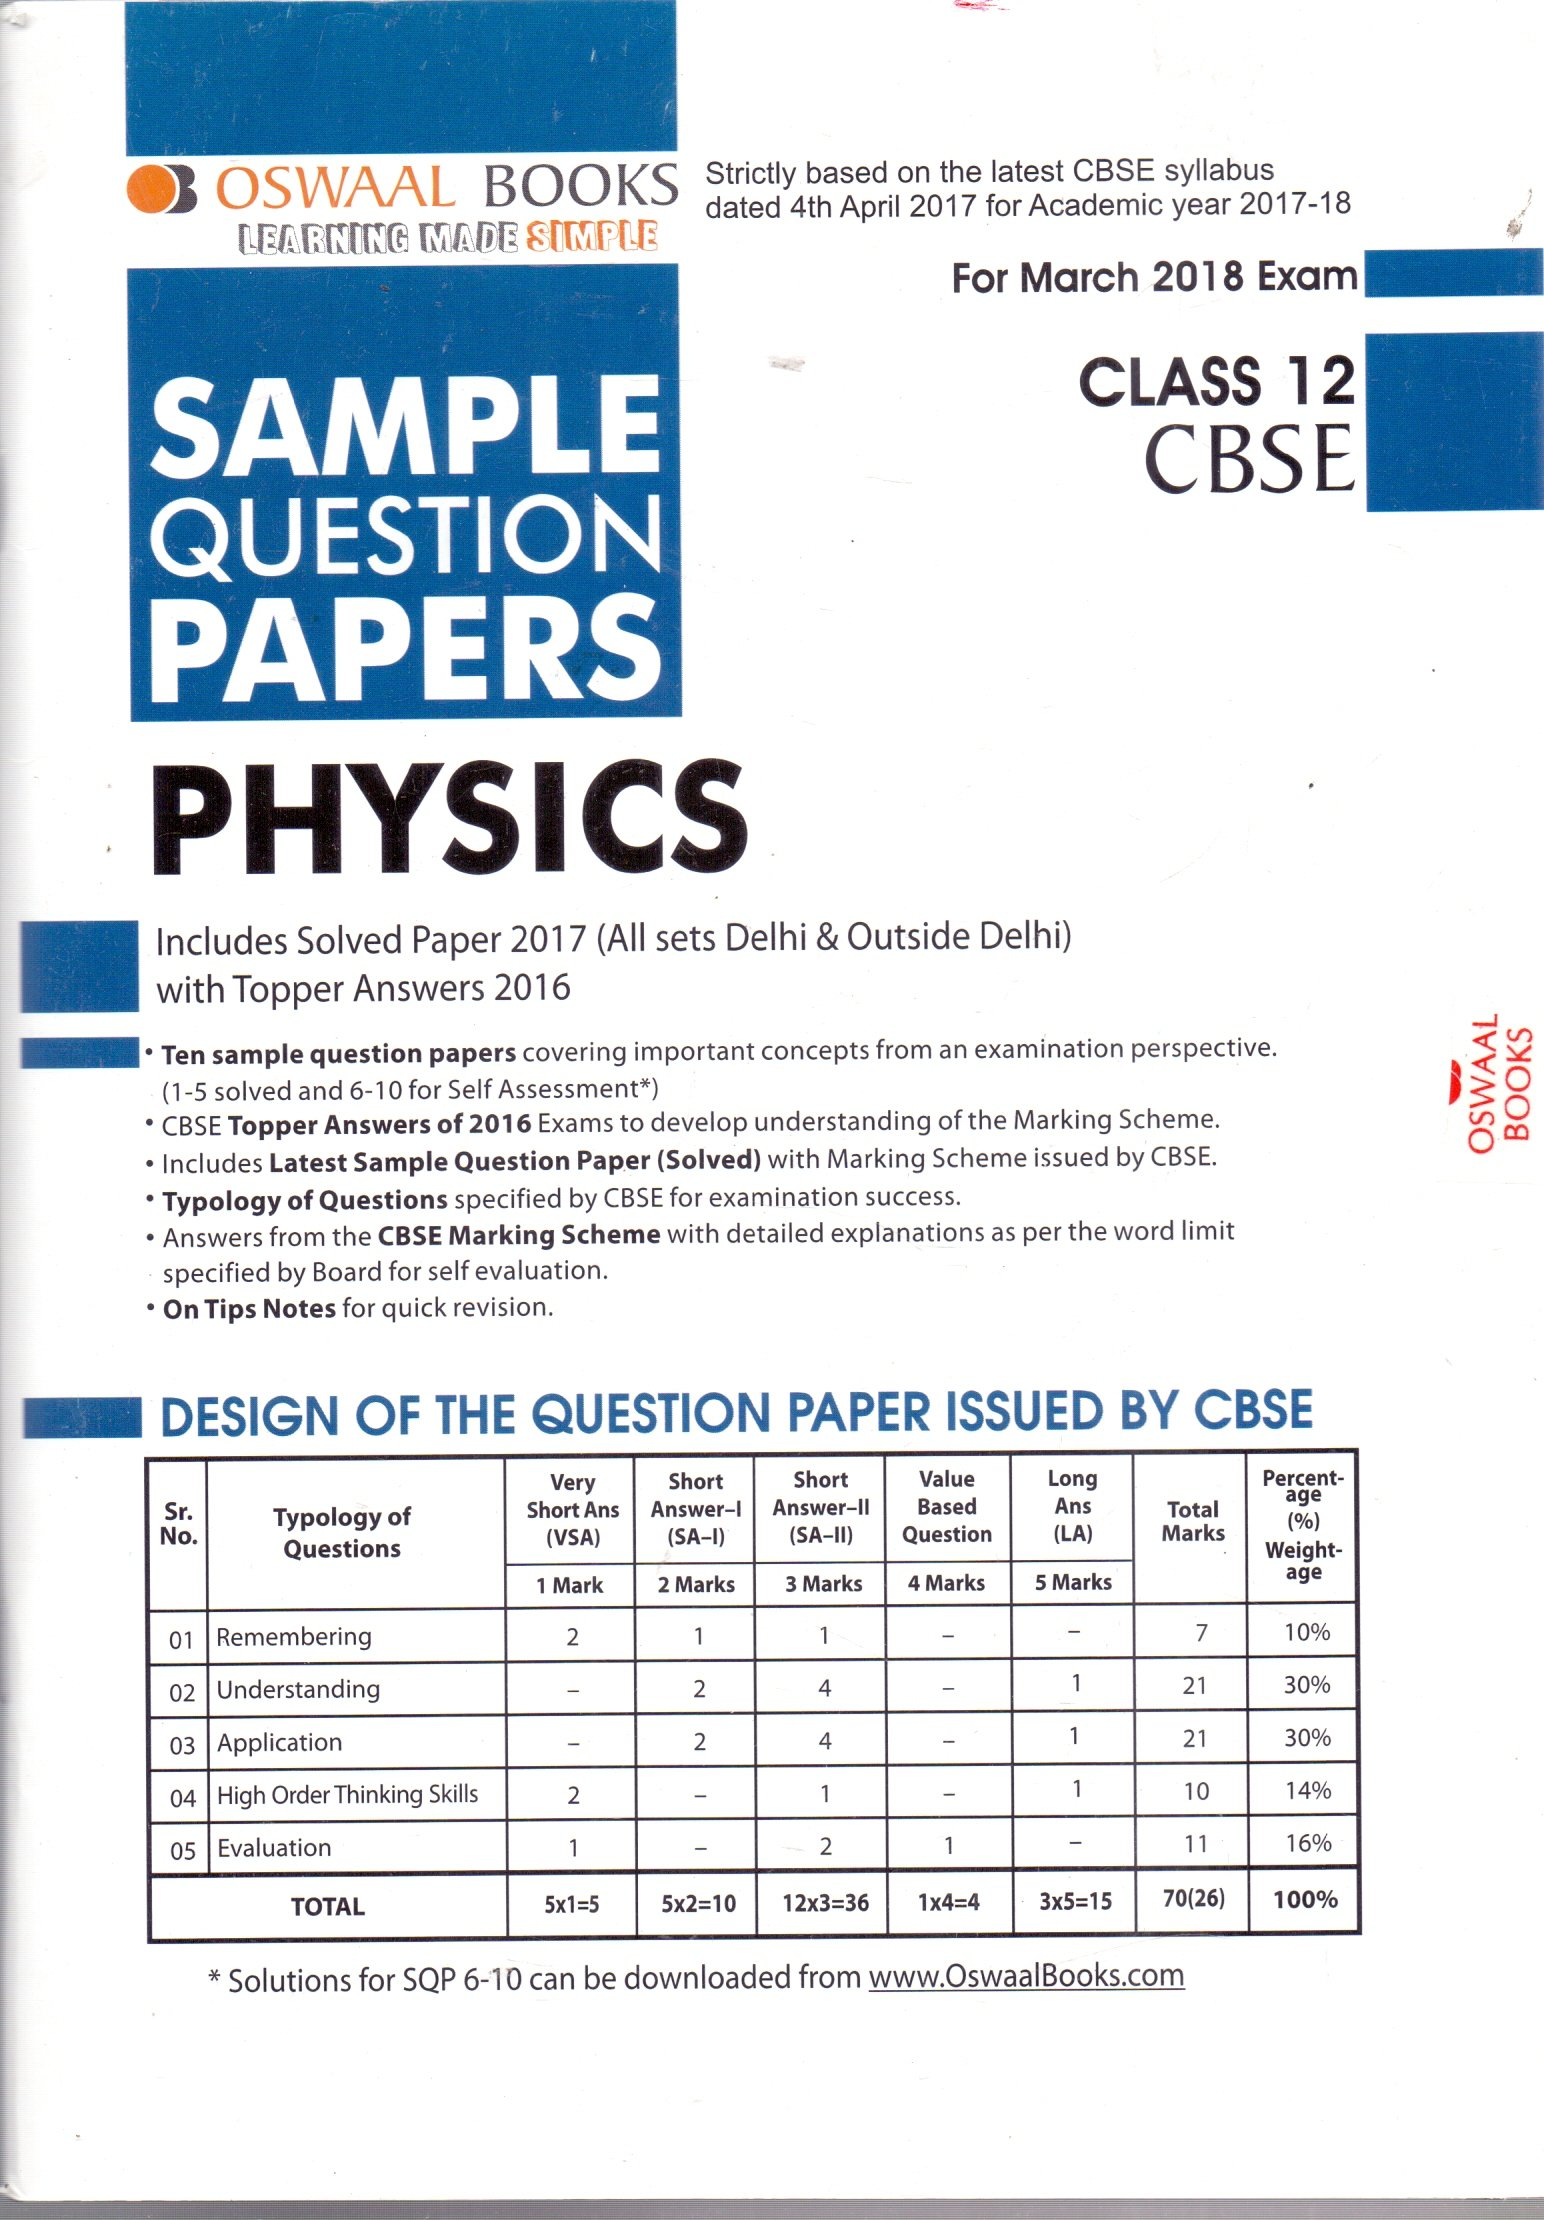 Oswaal cbse sample question papers for class 12 biology mar2018 oswaal cbse sample question papers for class 12 physics mar2018 exam malvernweather Choice Image